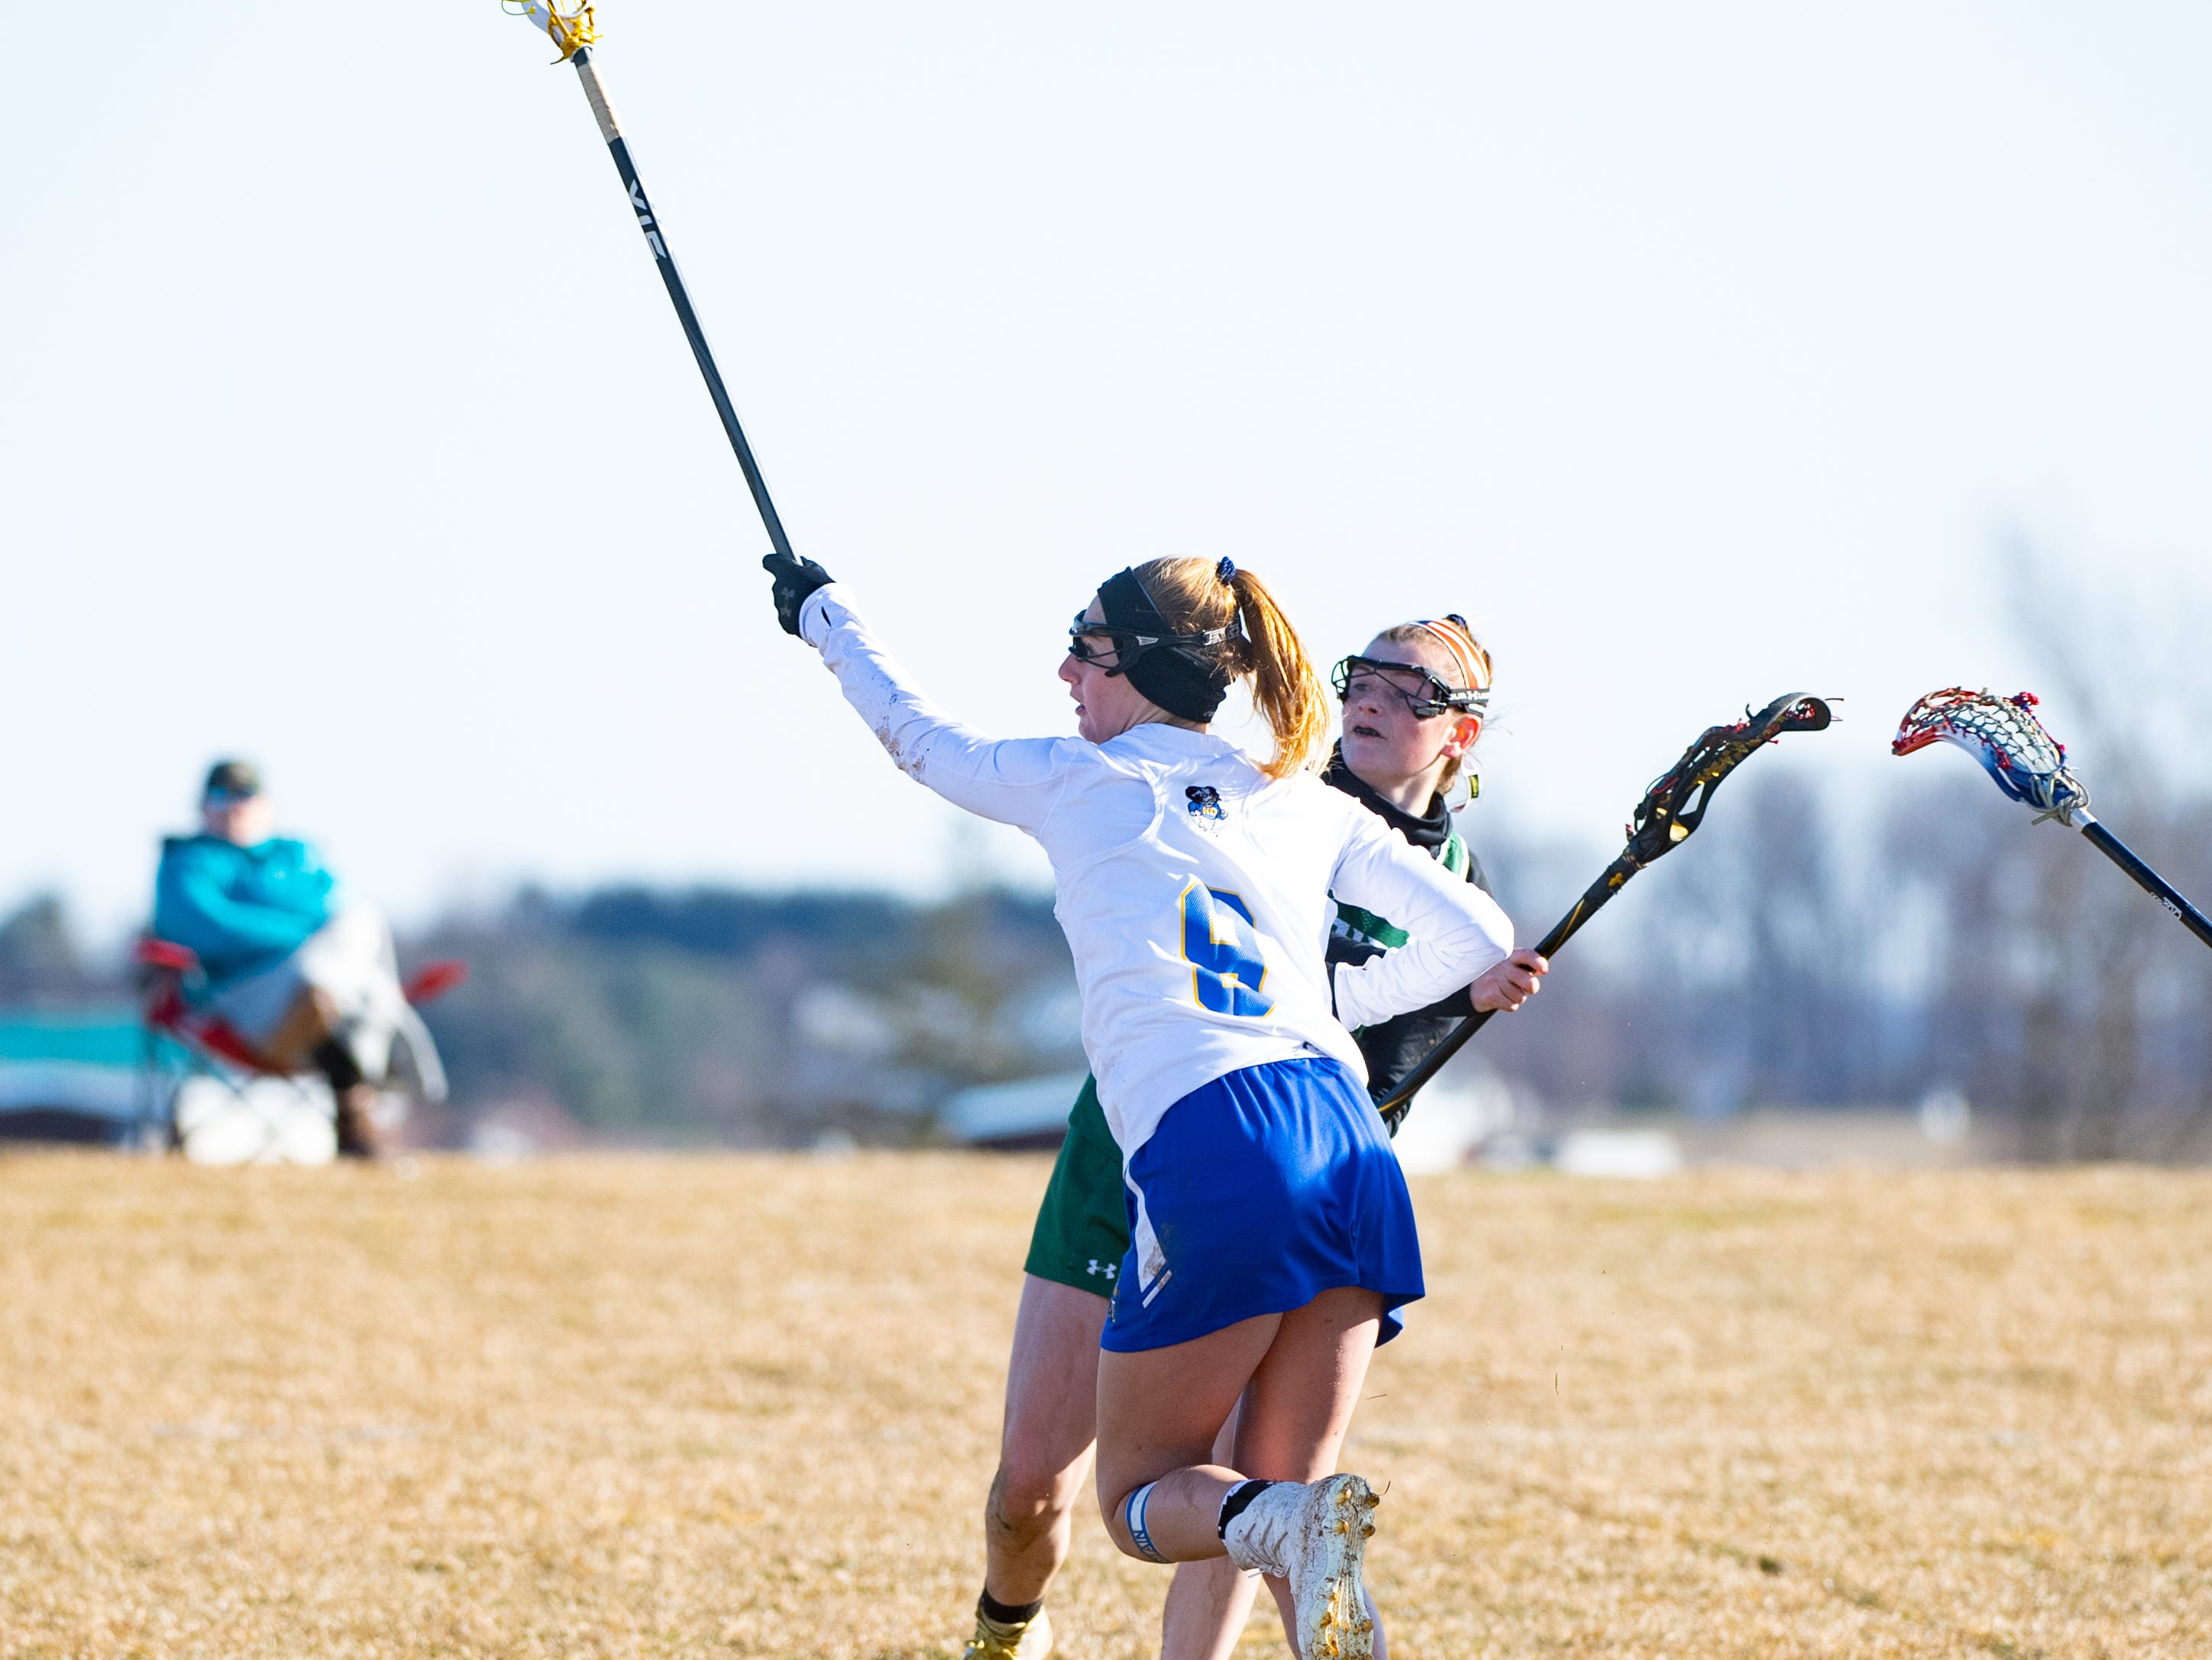 Mikayla Hostler (8) defends the pass during the girls' lacrosse game between Kennard-Dale and York Catholic, March 26, 2019 at Kennard-Dale High School. The Fighting Irish defeated the Rams 10 to 9.